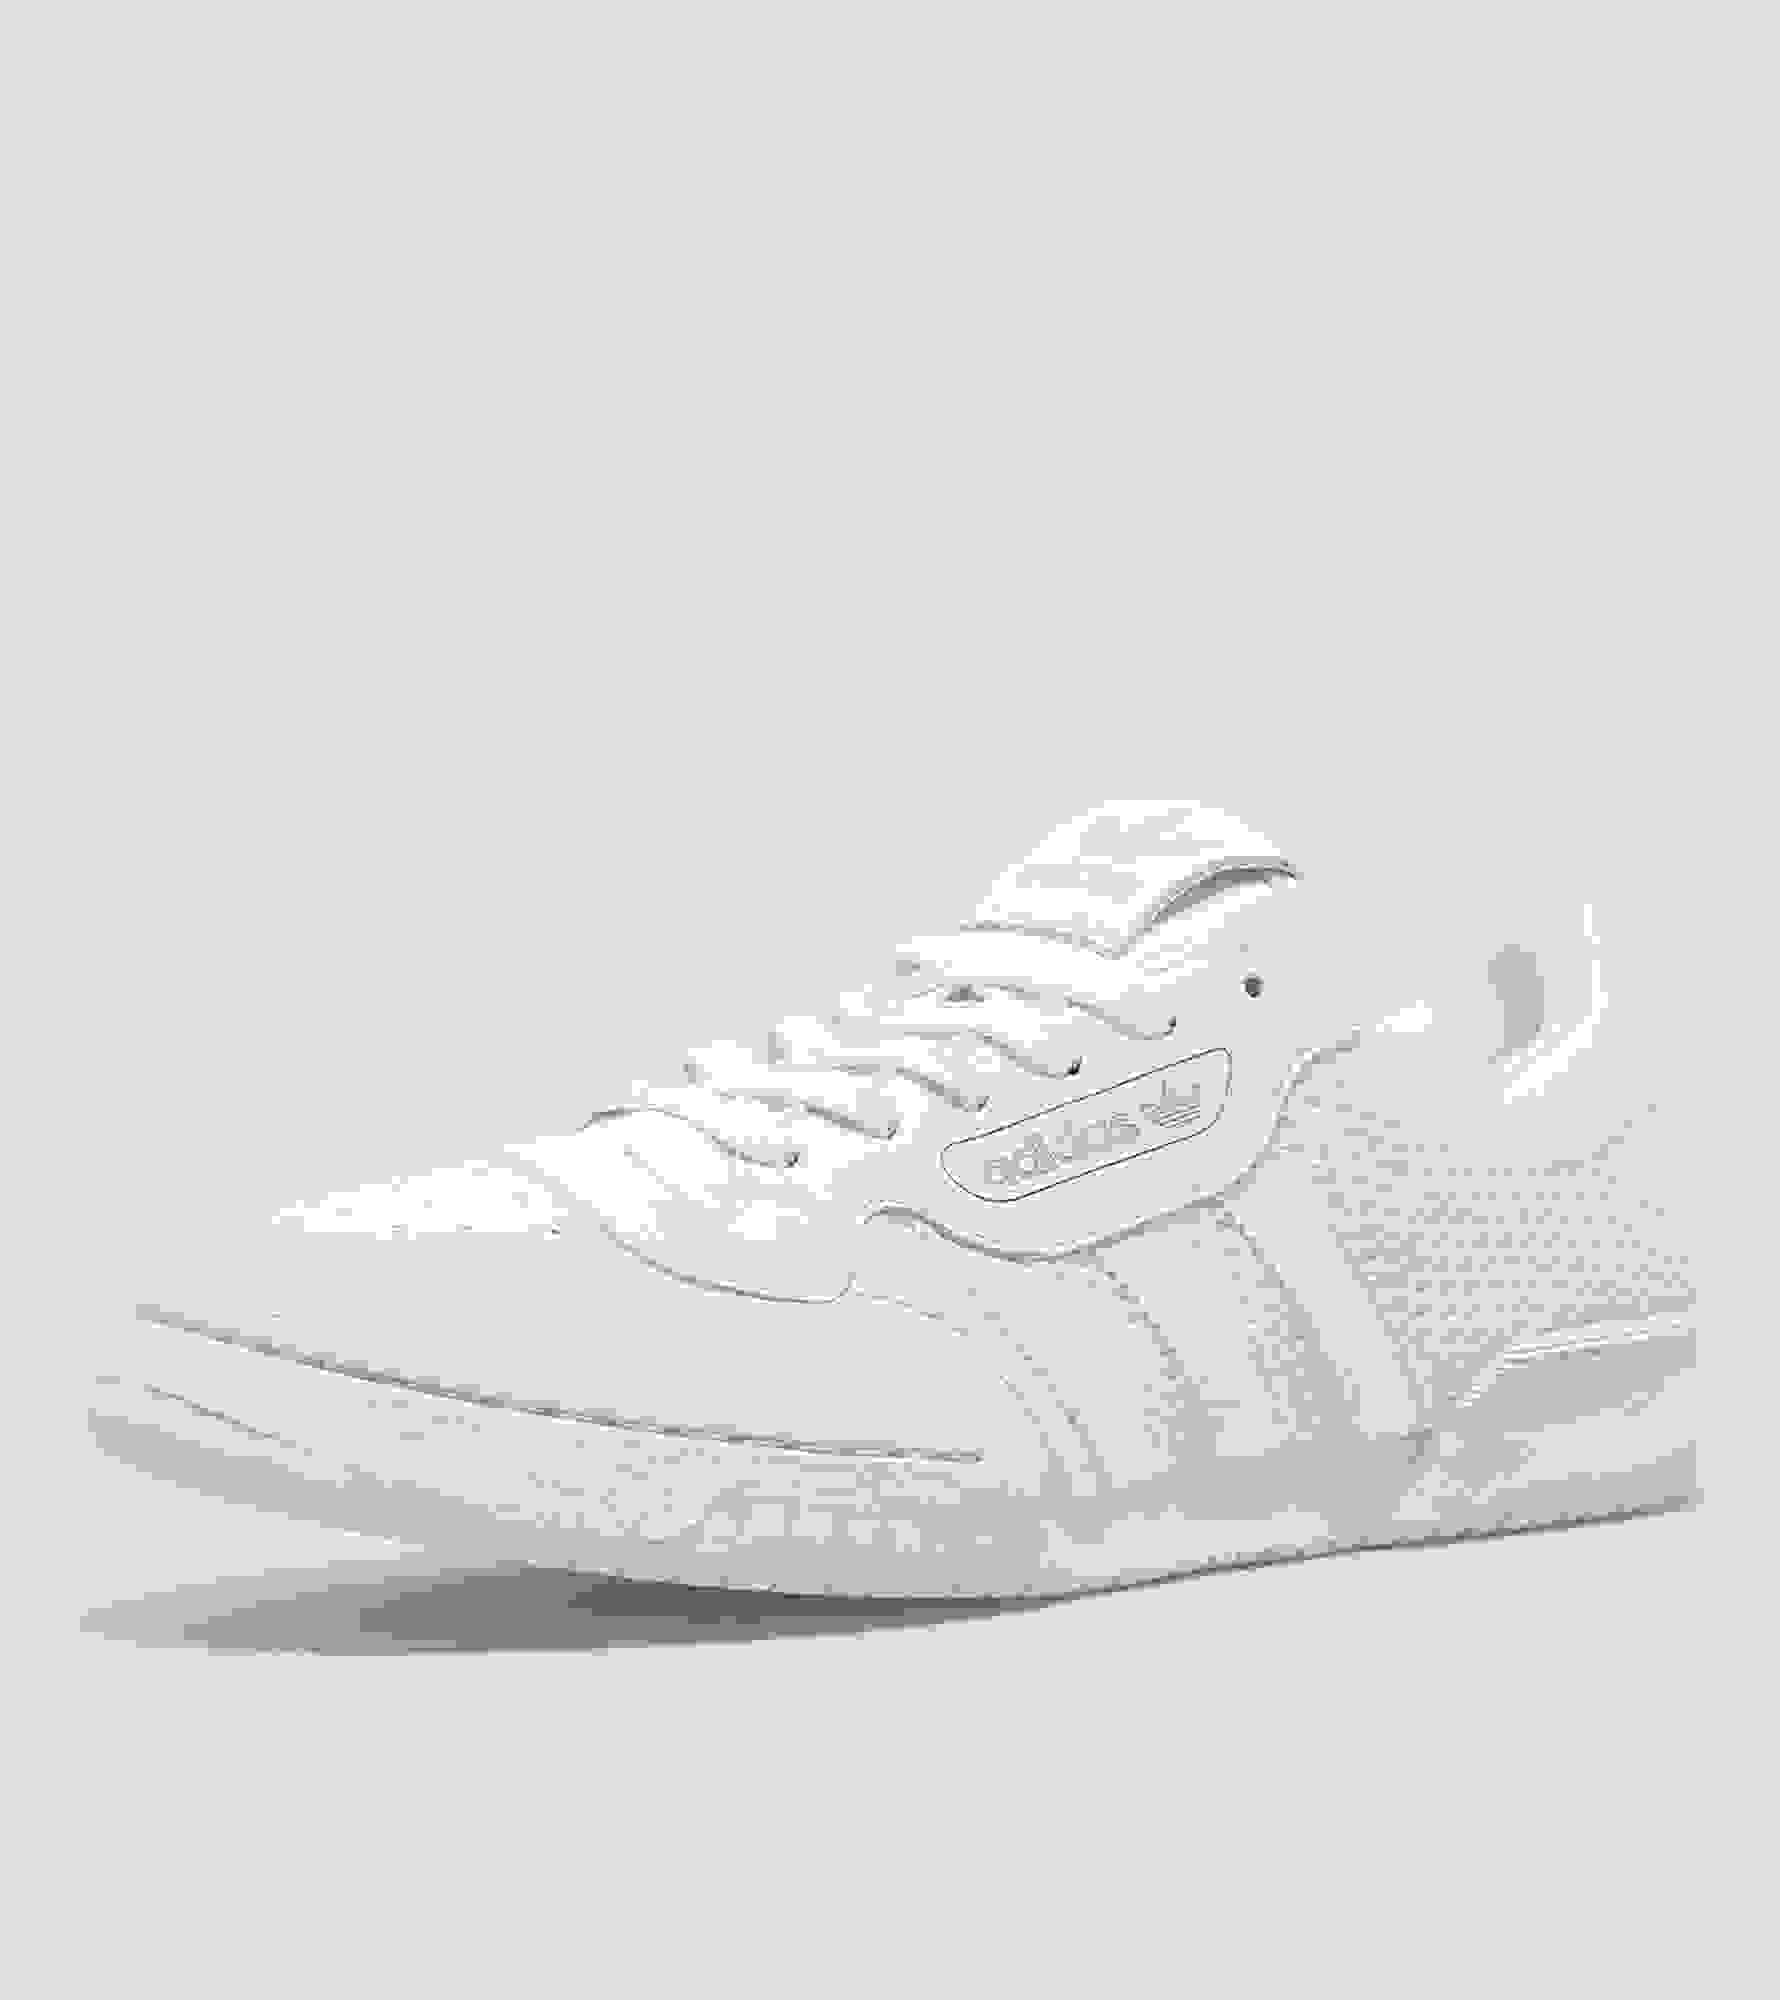 513bd3226b6714 adidas powerphase 1988 Find great deals on online for adidas Golf Cleats in Golf  Spikes. Adidas SoftSpikes Pulsar Pins Golf Shoe ...